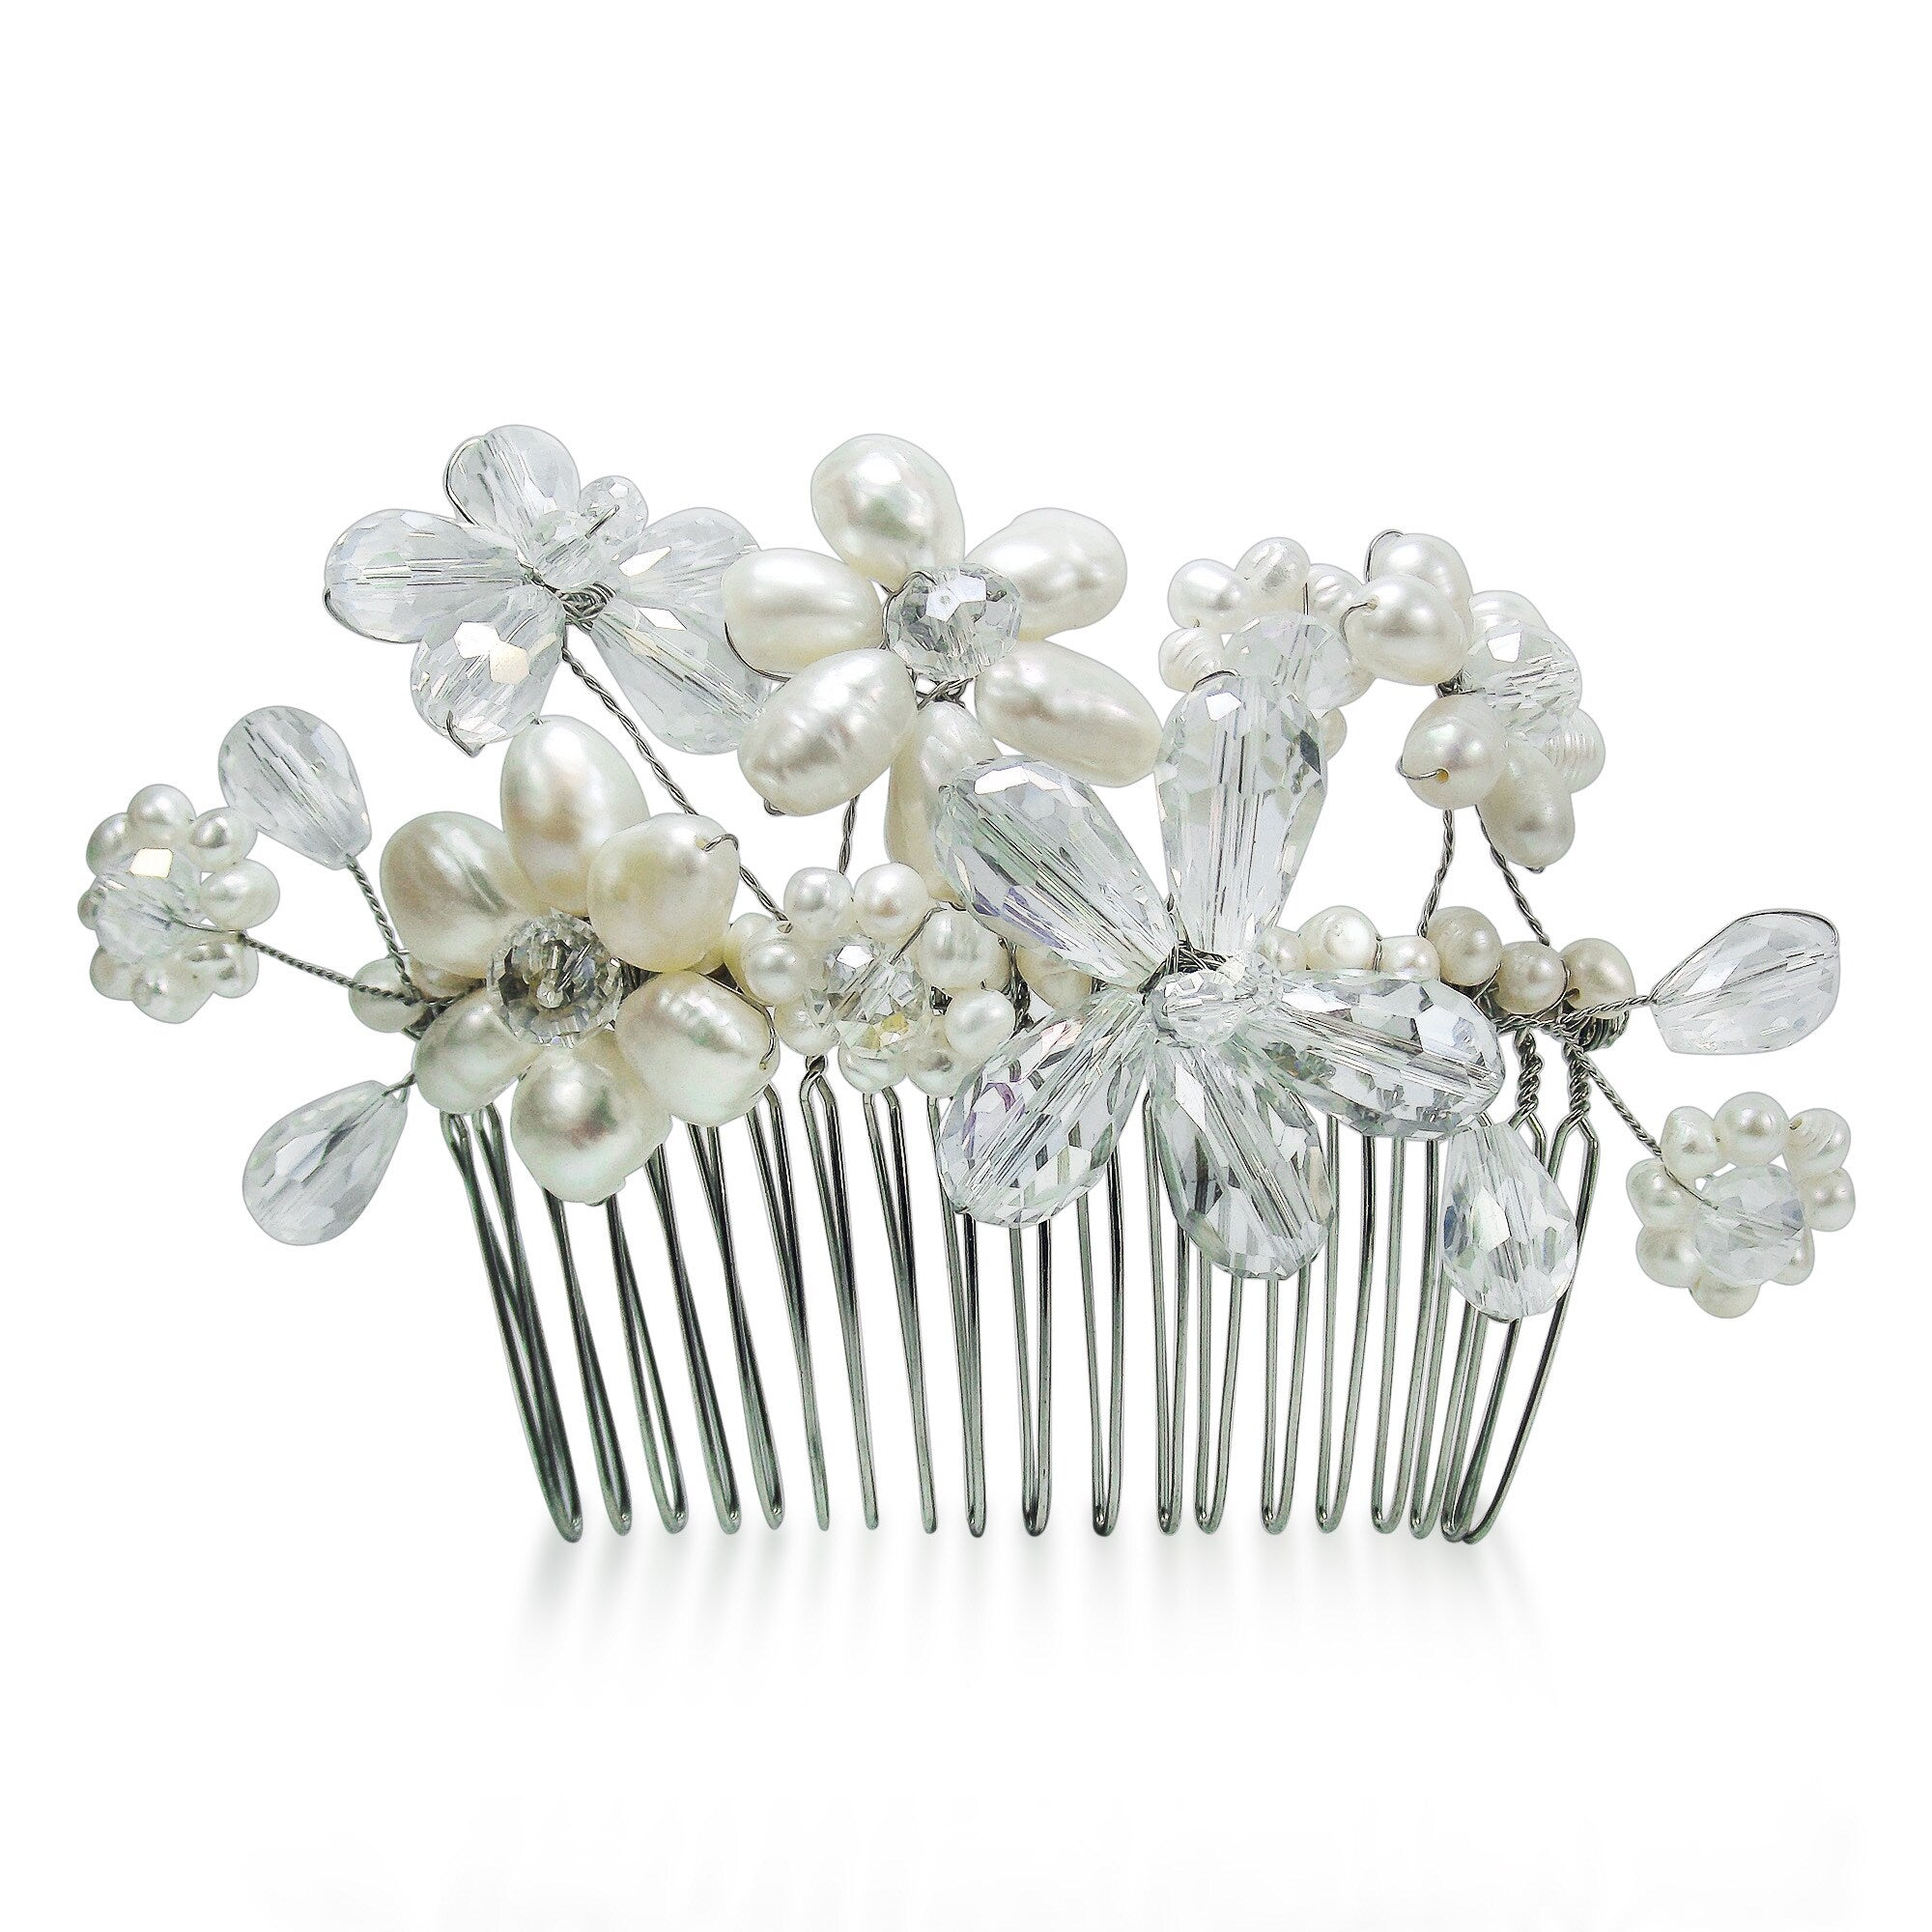 Shop Handmade Floral Serenity White Pearls and Crystals Bridal Hair Comb (Thailand)